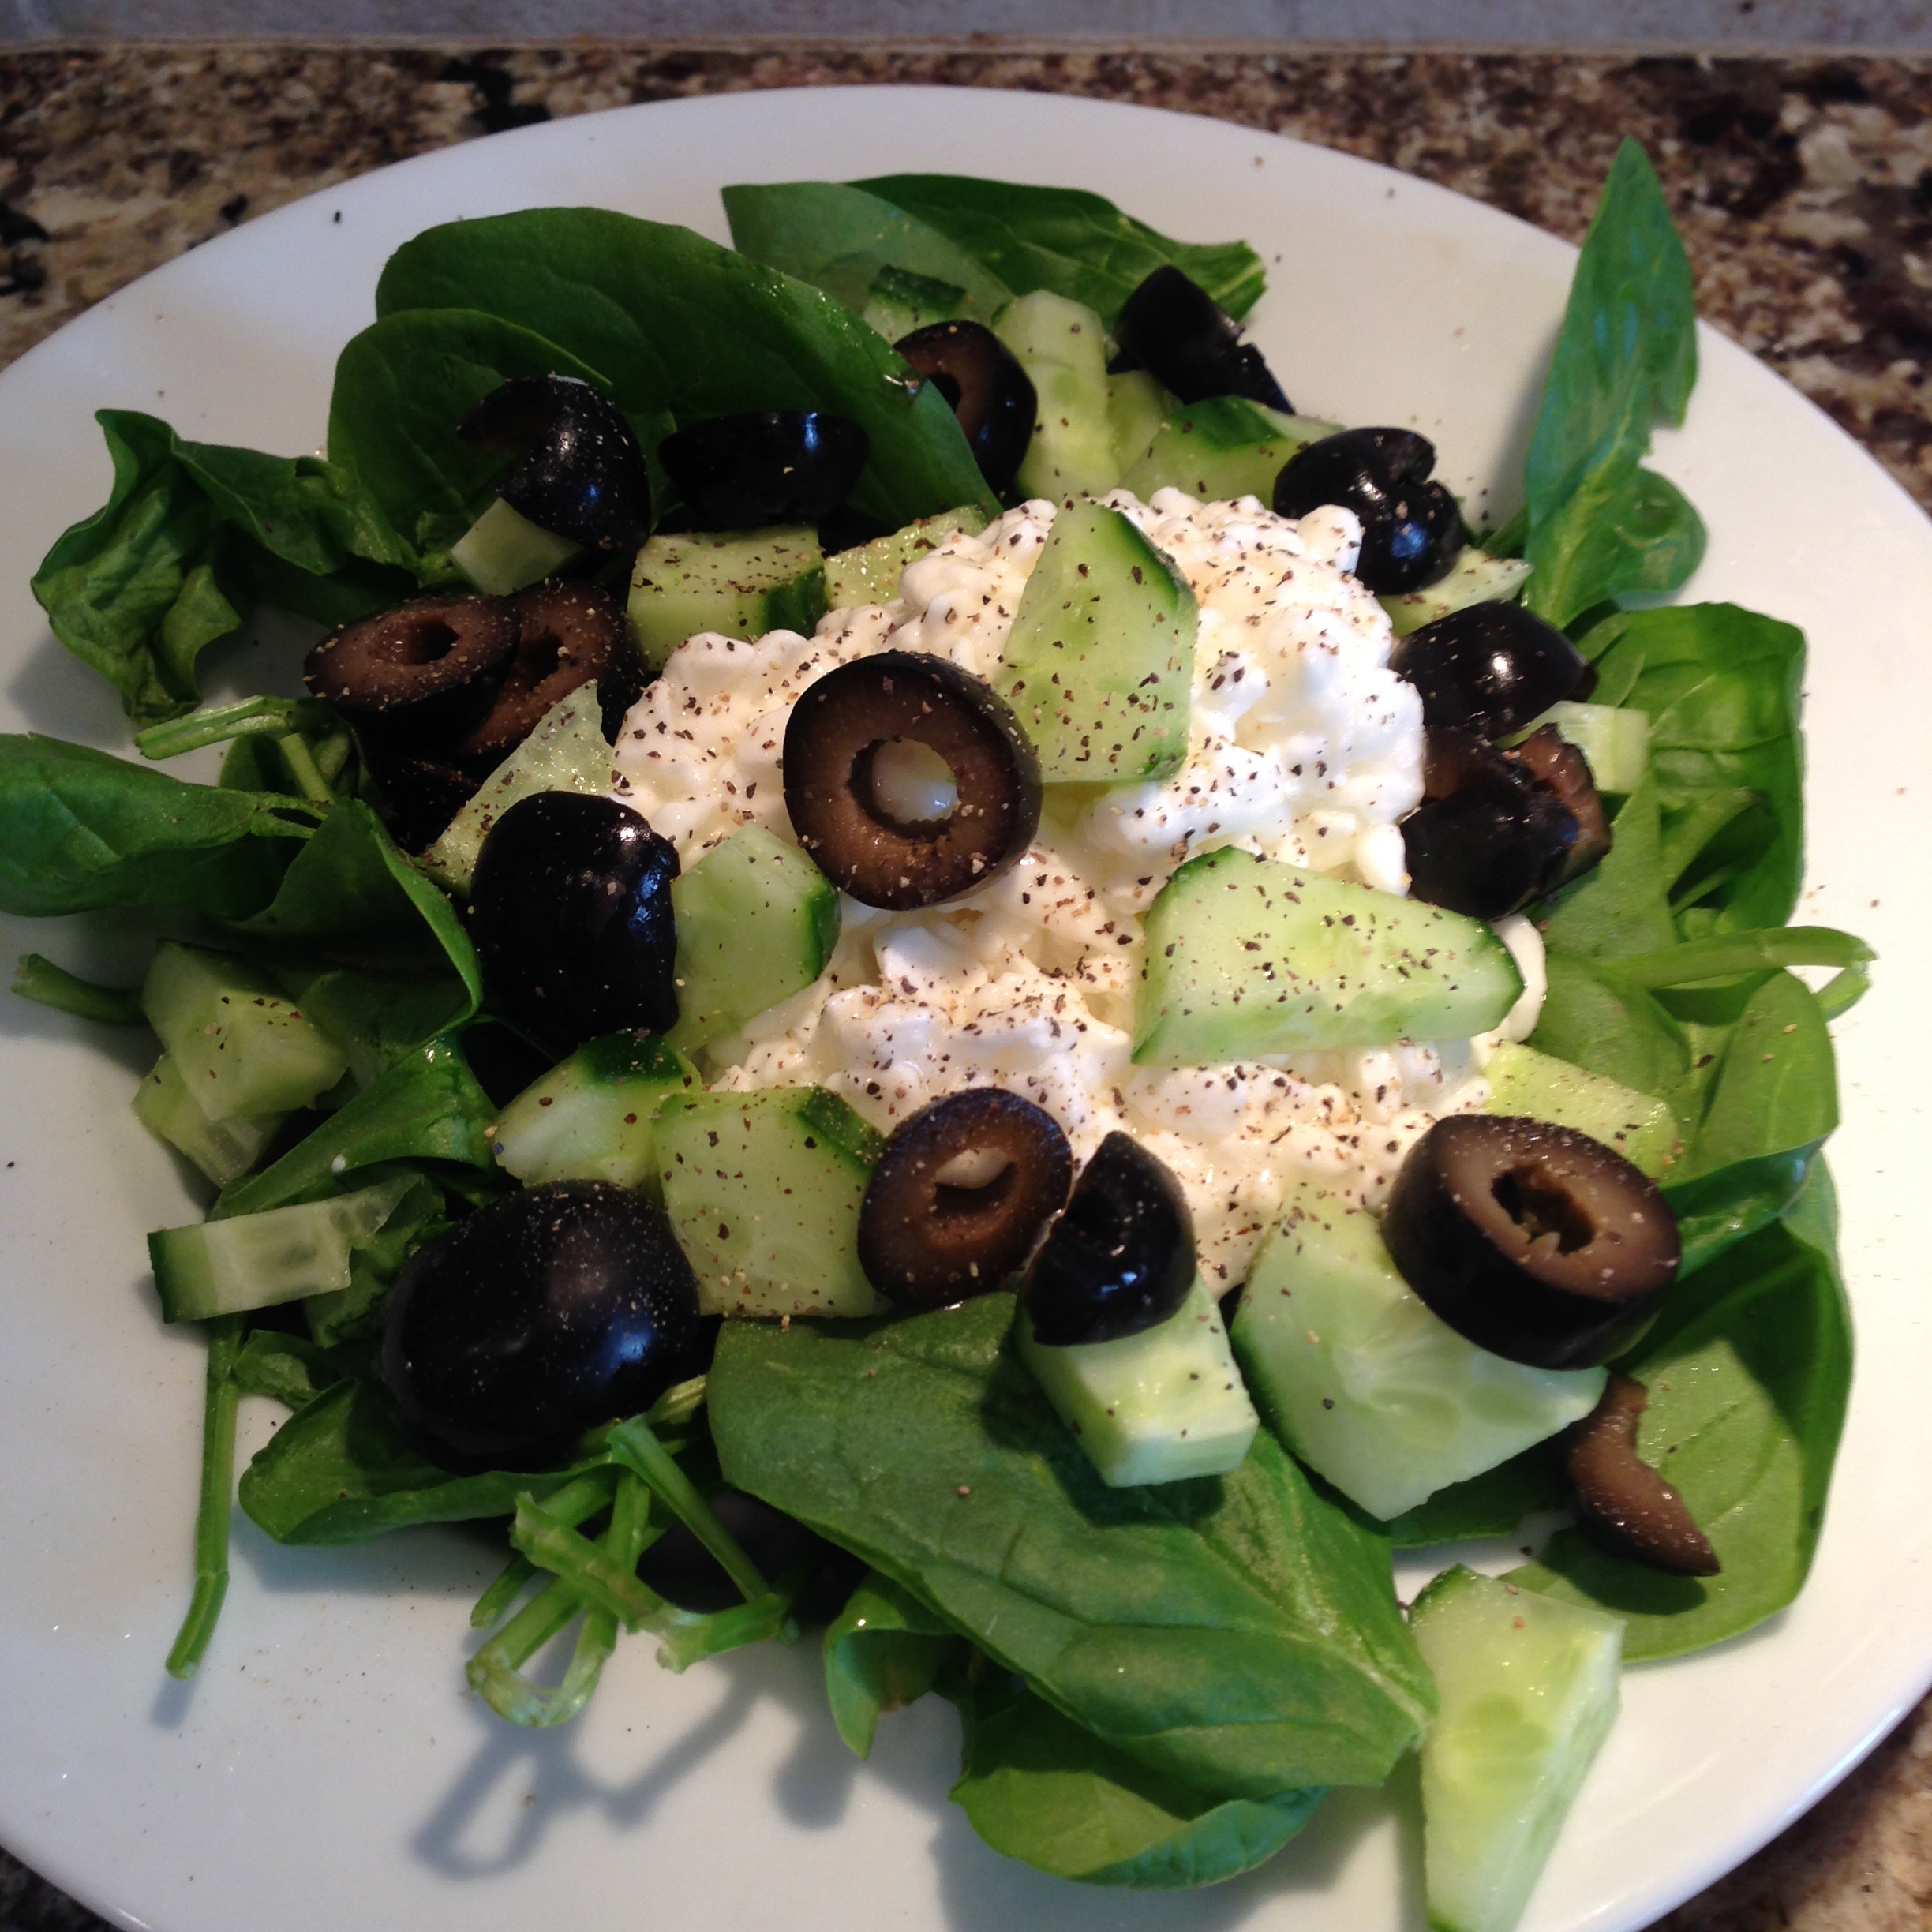 Cottage Cheese with Cucumbers, Black Olives, and Spinach Salad